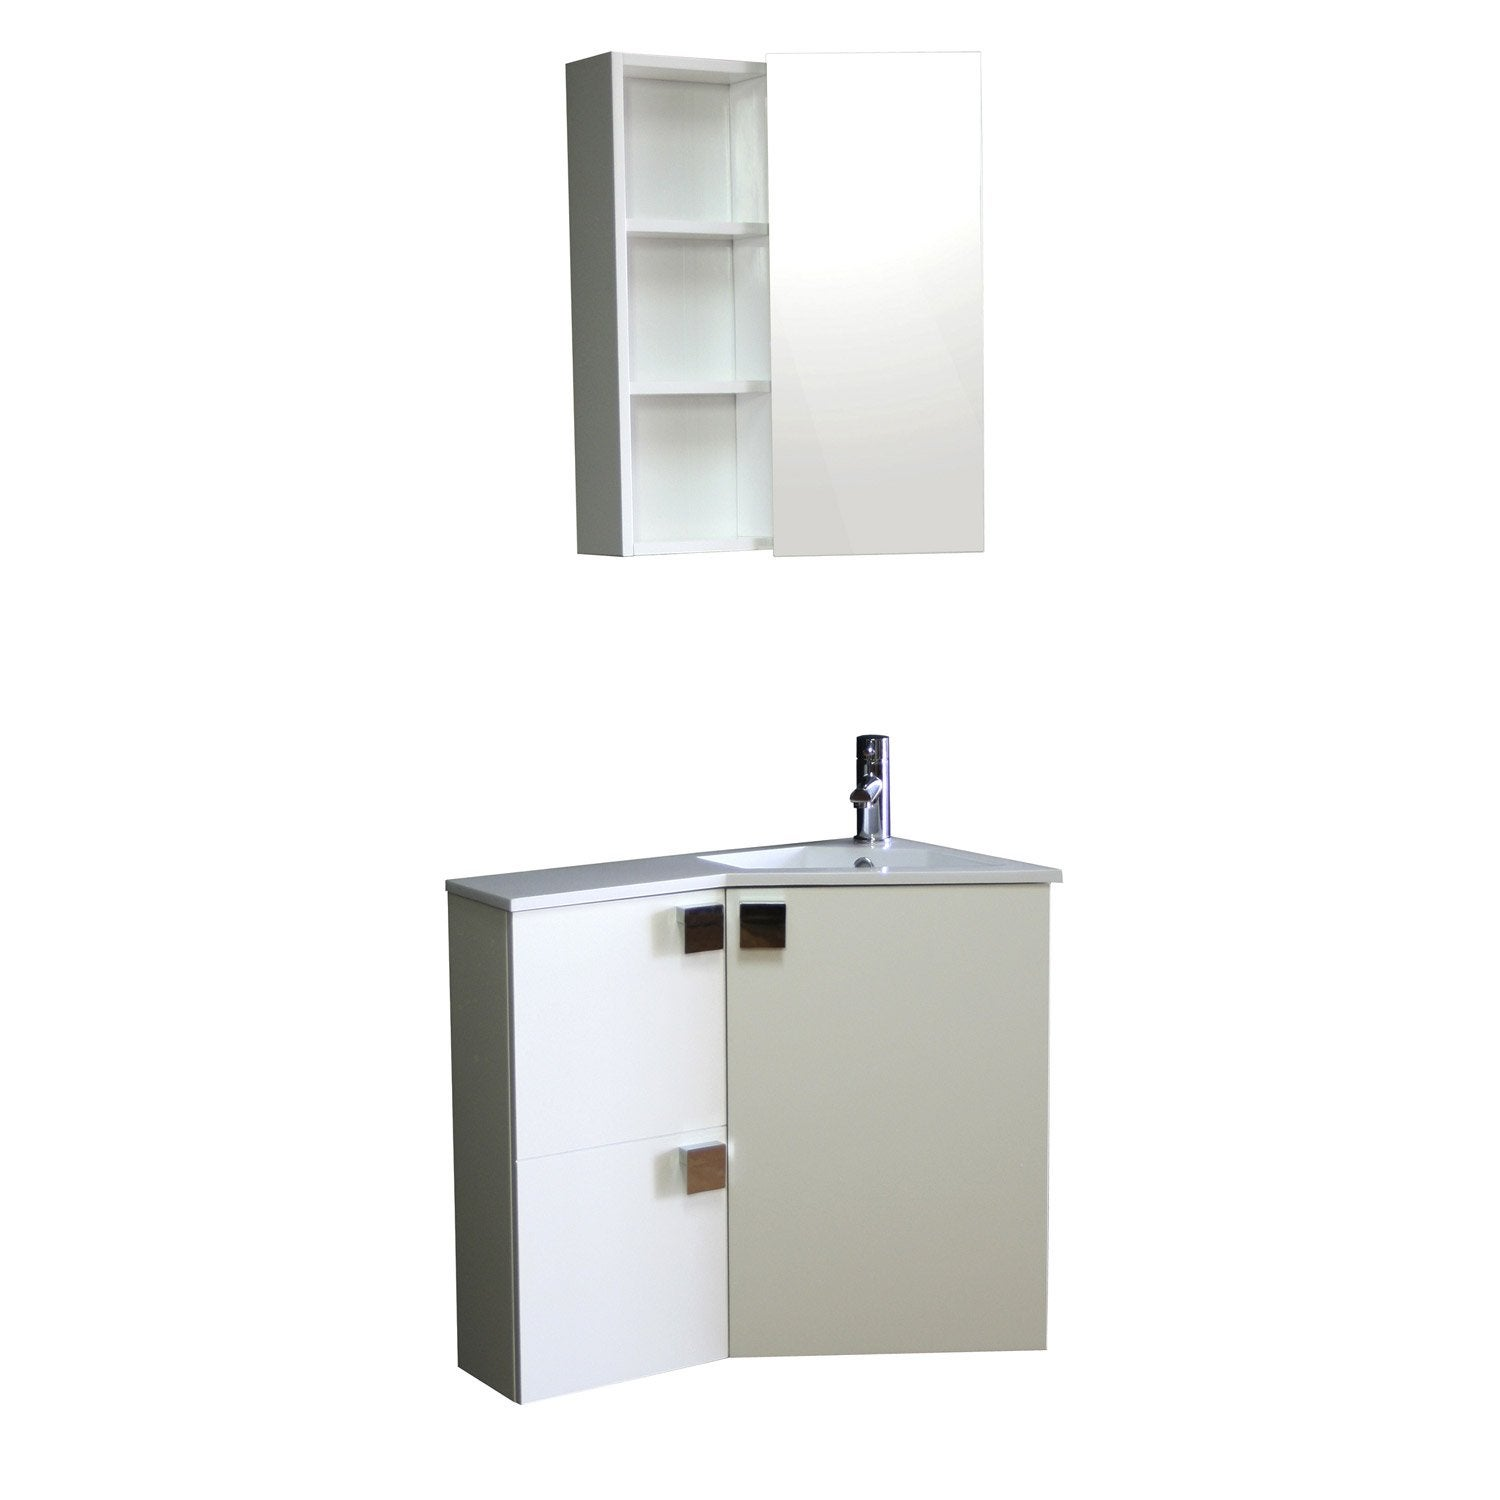 Meuble sous vasque corner blanc leroy merlin for Meuble vasque leroy merlin